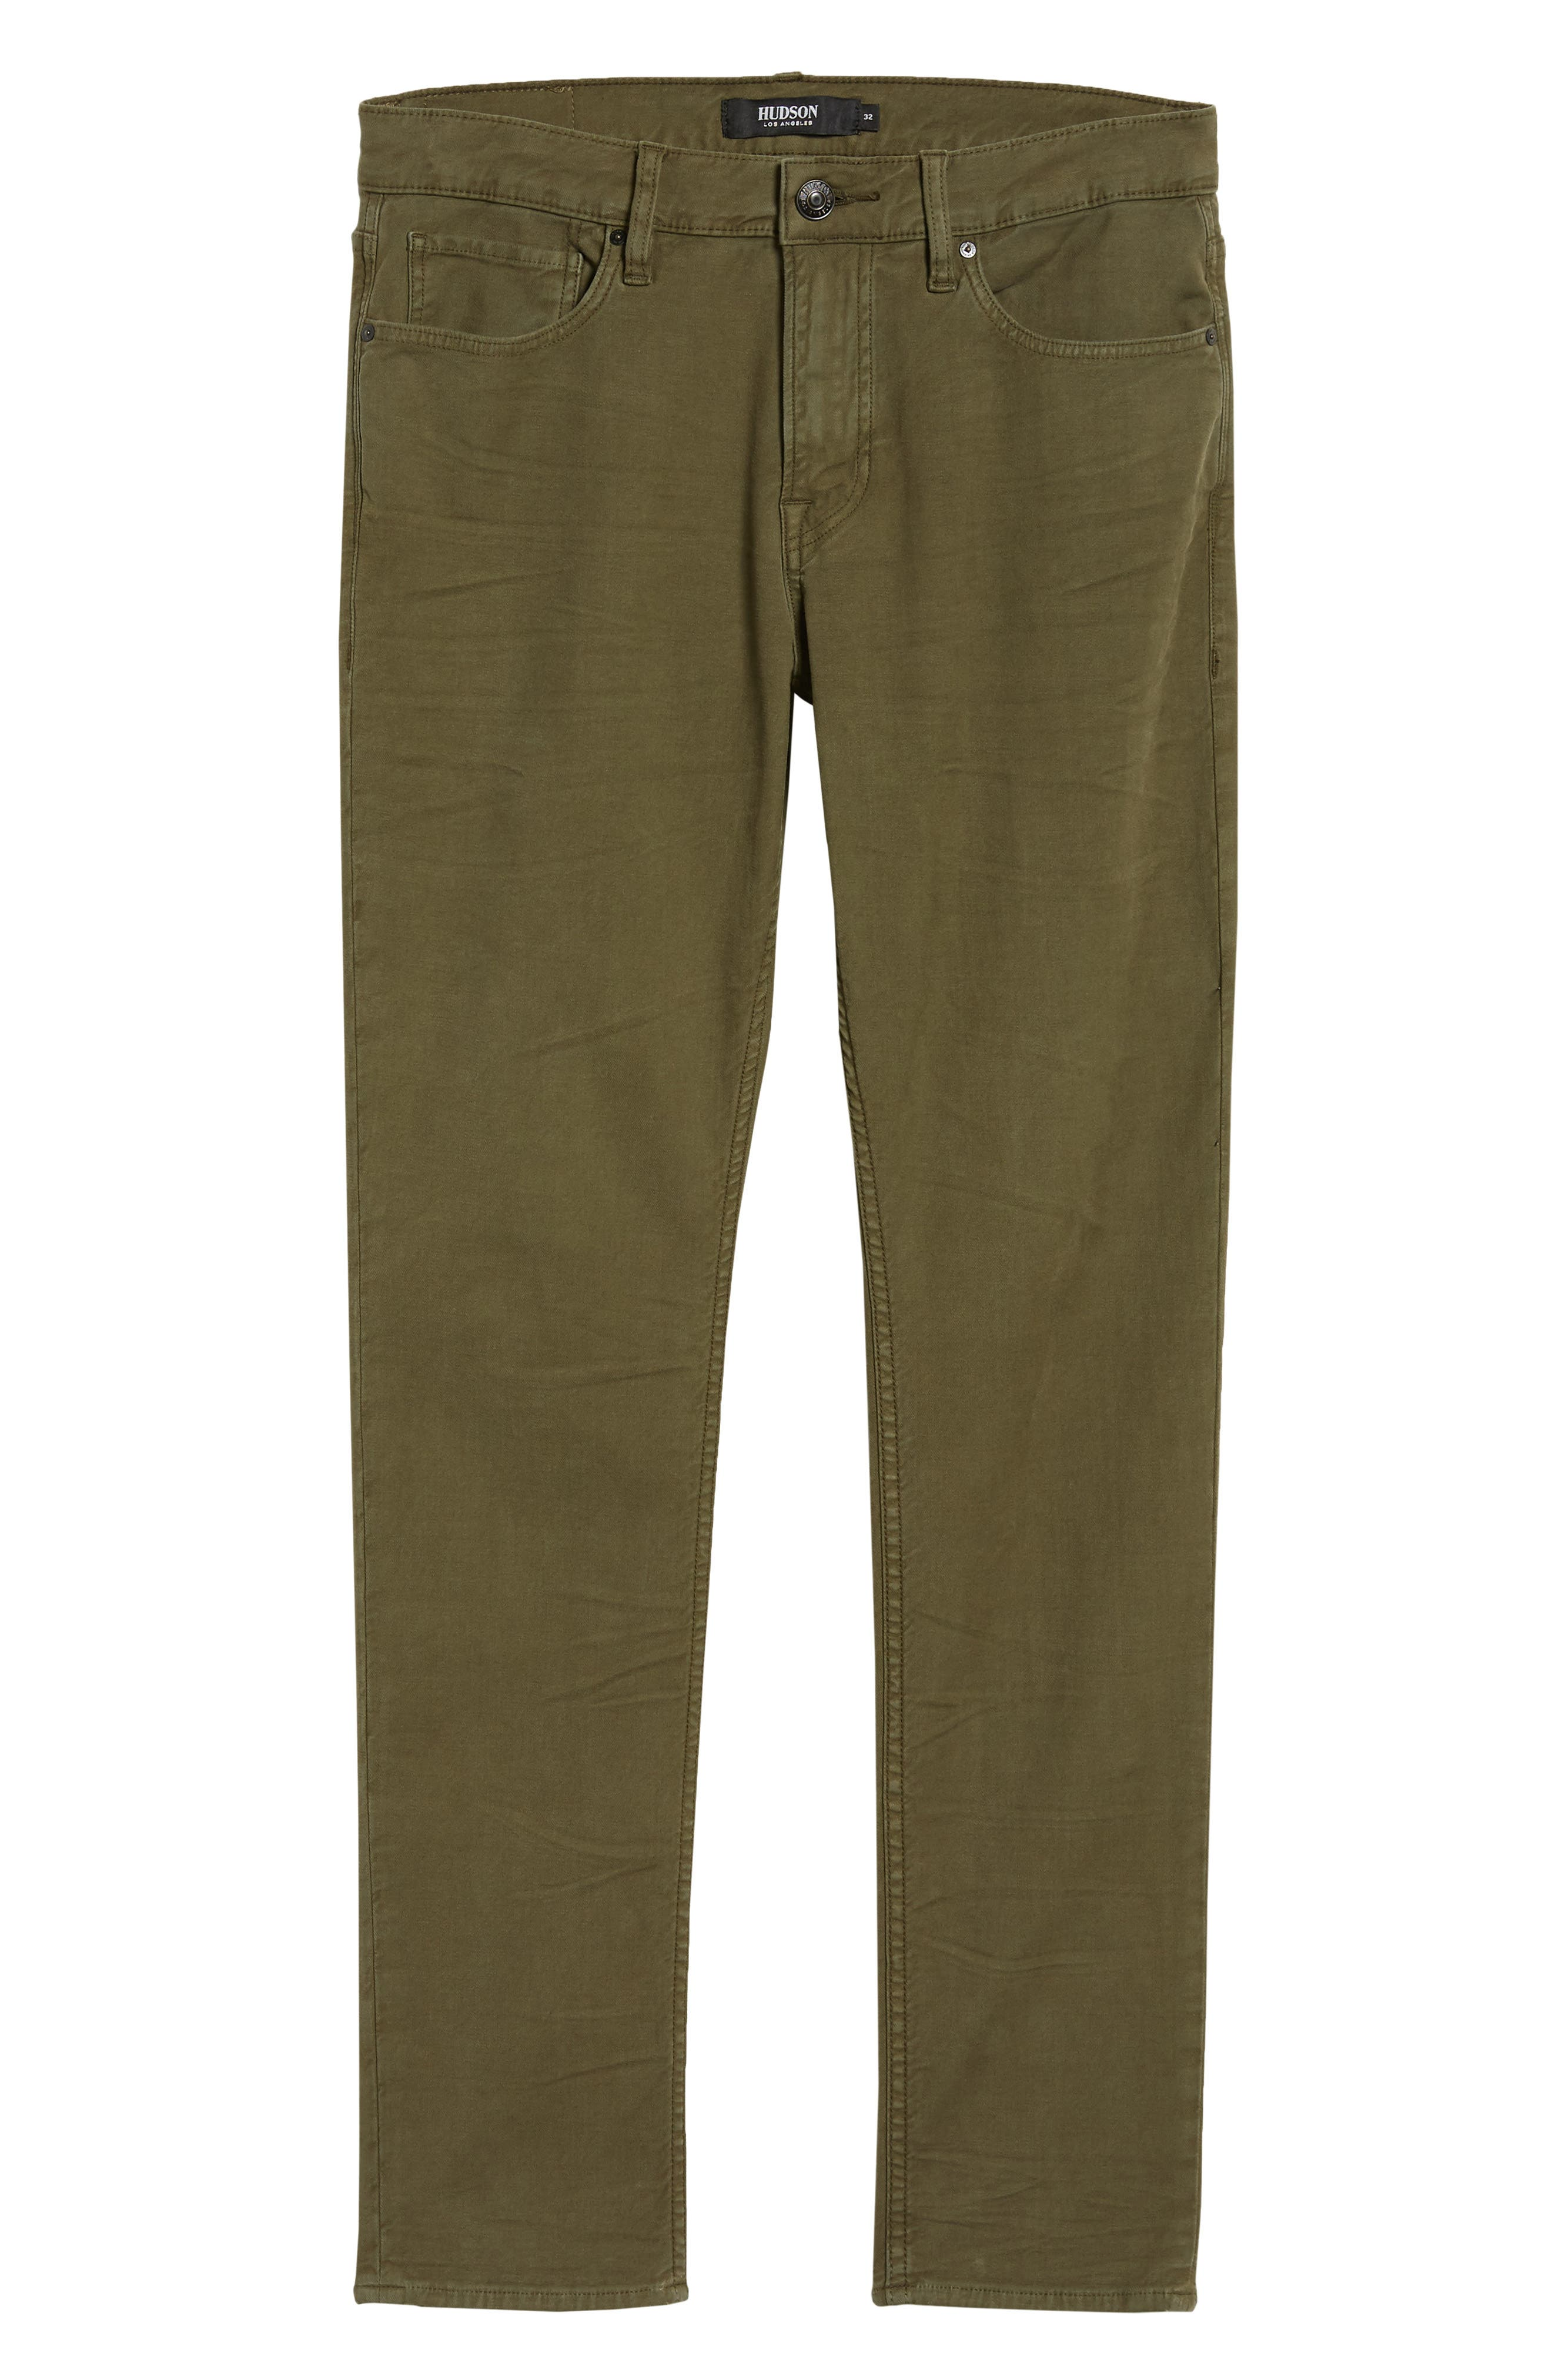 Axl Skinny Fit Jeans,                             Alternate thumbnail 6, color,                             FATIGUE GREEN